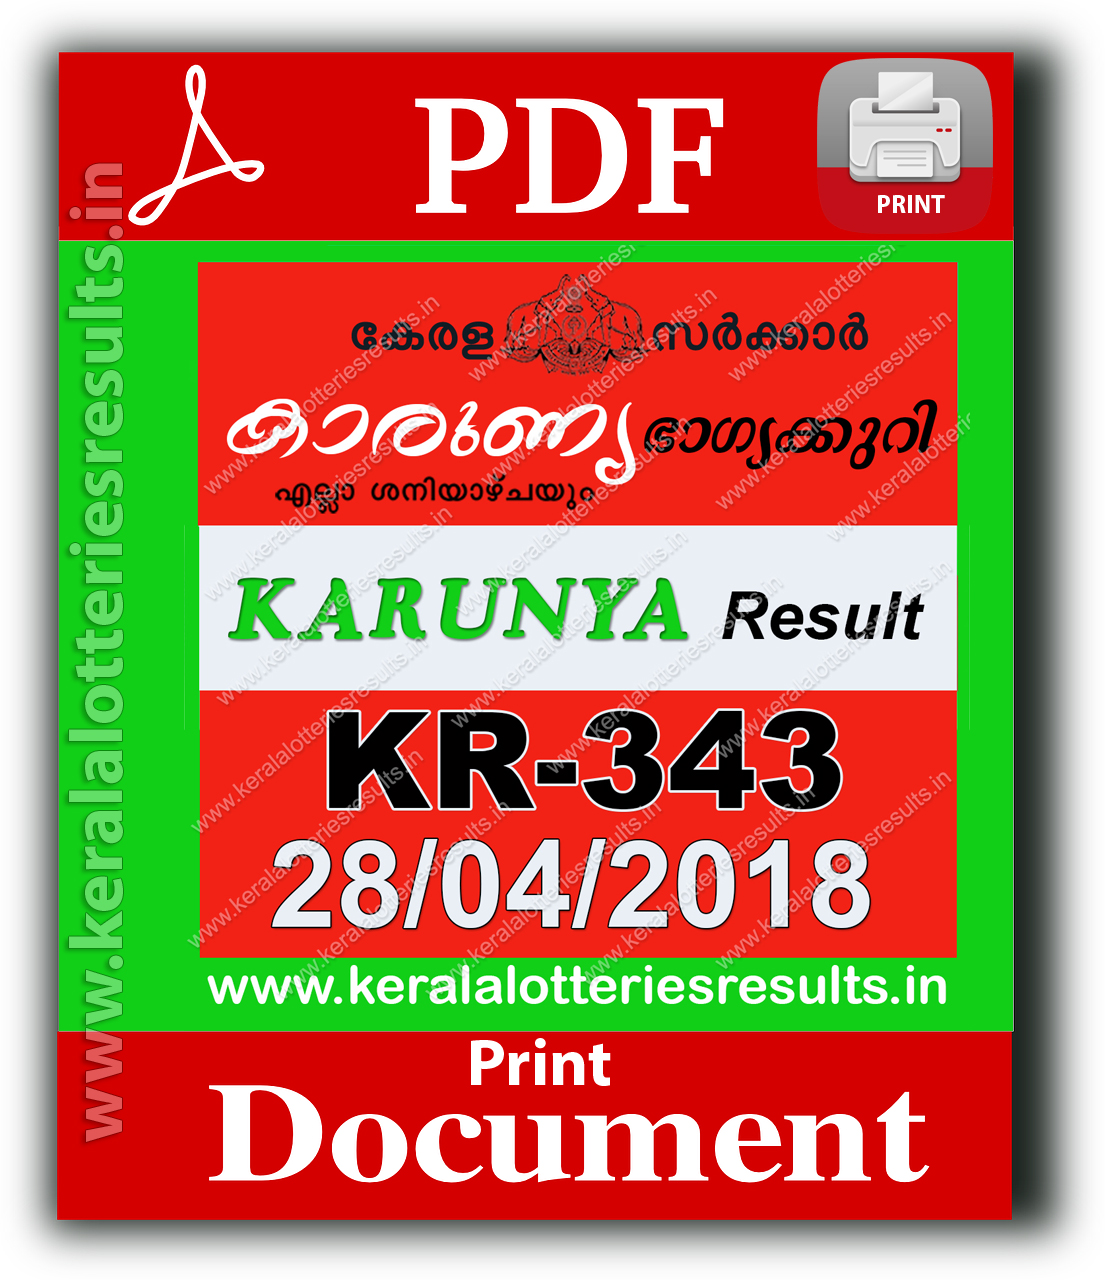 Kerala Lottery 28 04 2018: Karunya KR 343 Lottery Results Official